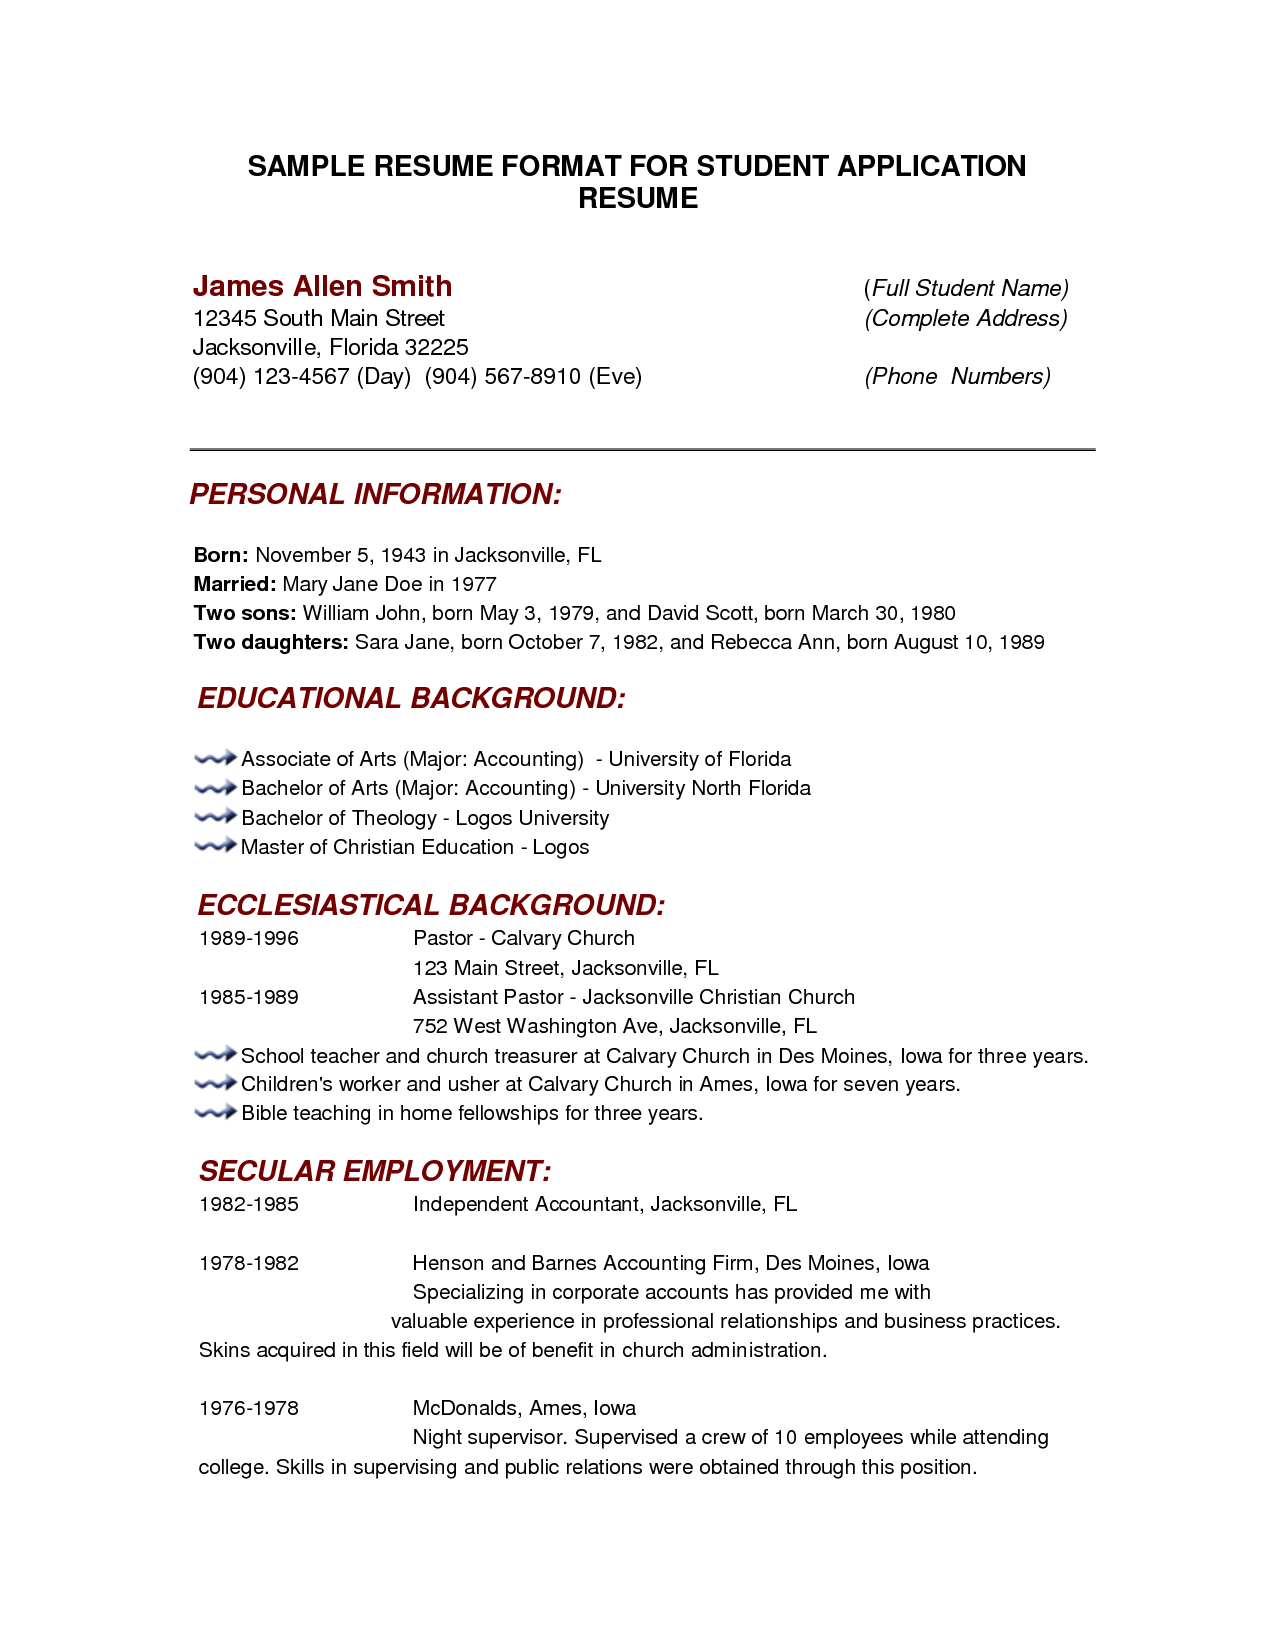 full block resume format style for business letter examples basic template free samples